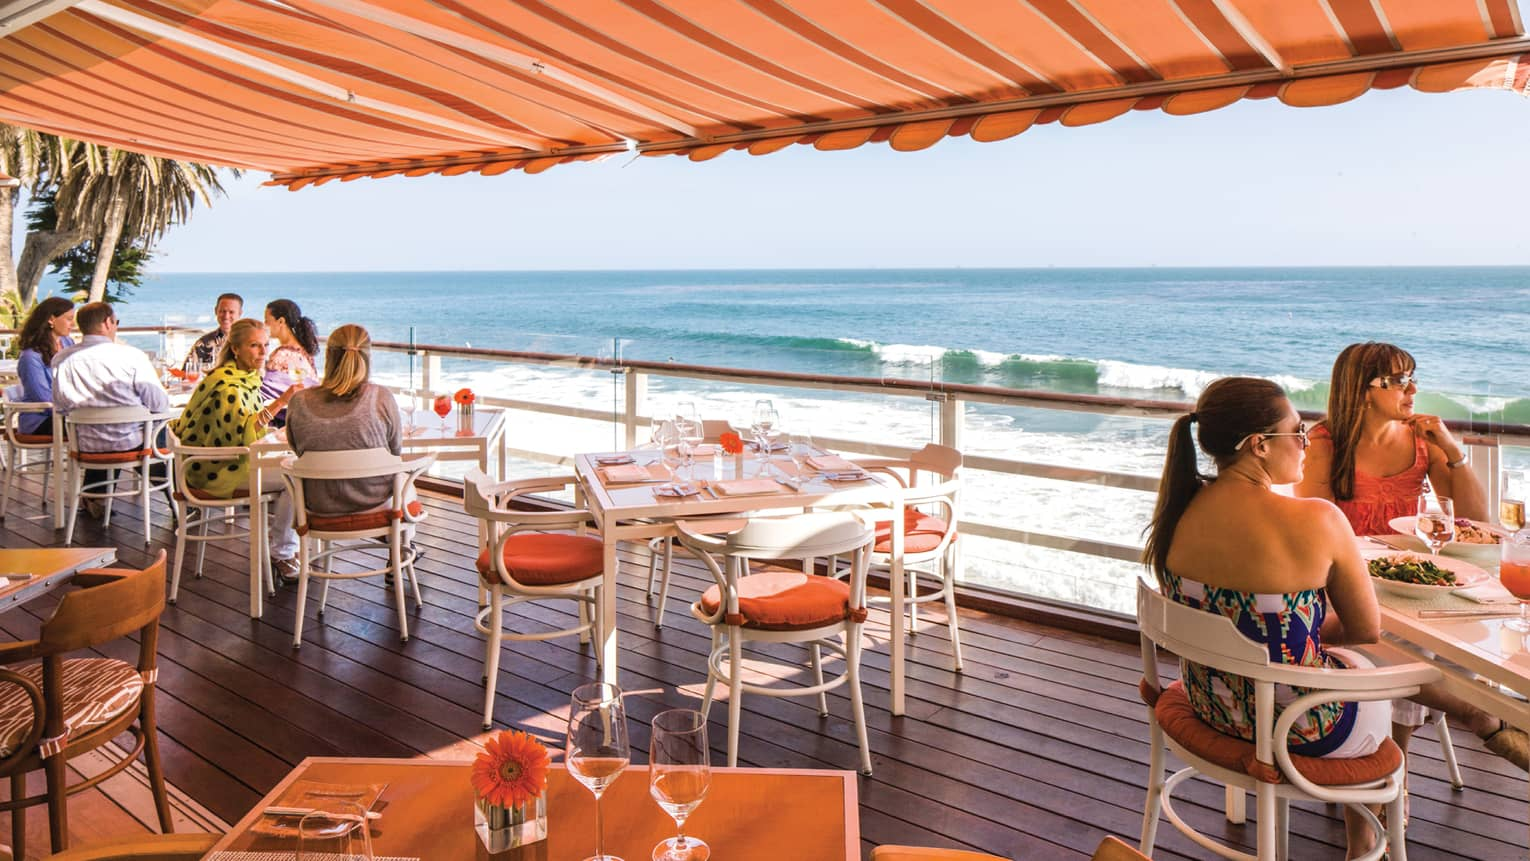 Diners on Tydes restaurant patio under striped orange awning, overlooking beach, ocean